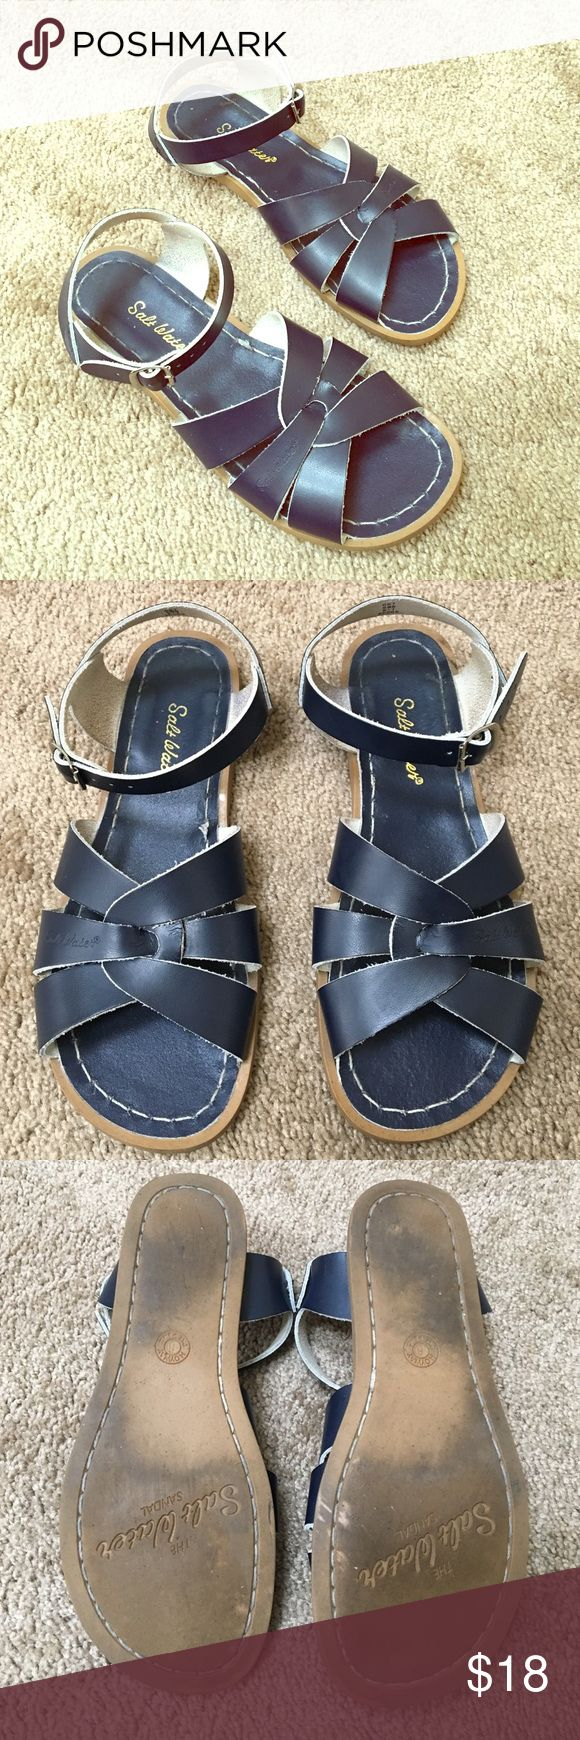 Good condition, Navy, Saltwater Sandals by Hoy. Good condition, Navy, Saltwater Sandals by Hoy. Salt Water Sandals by Hoy Shoes Sandals